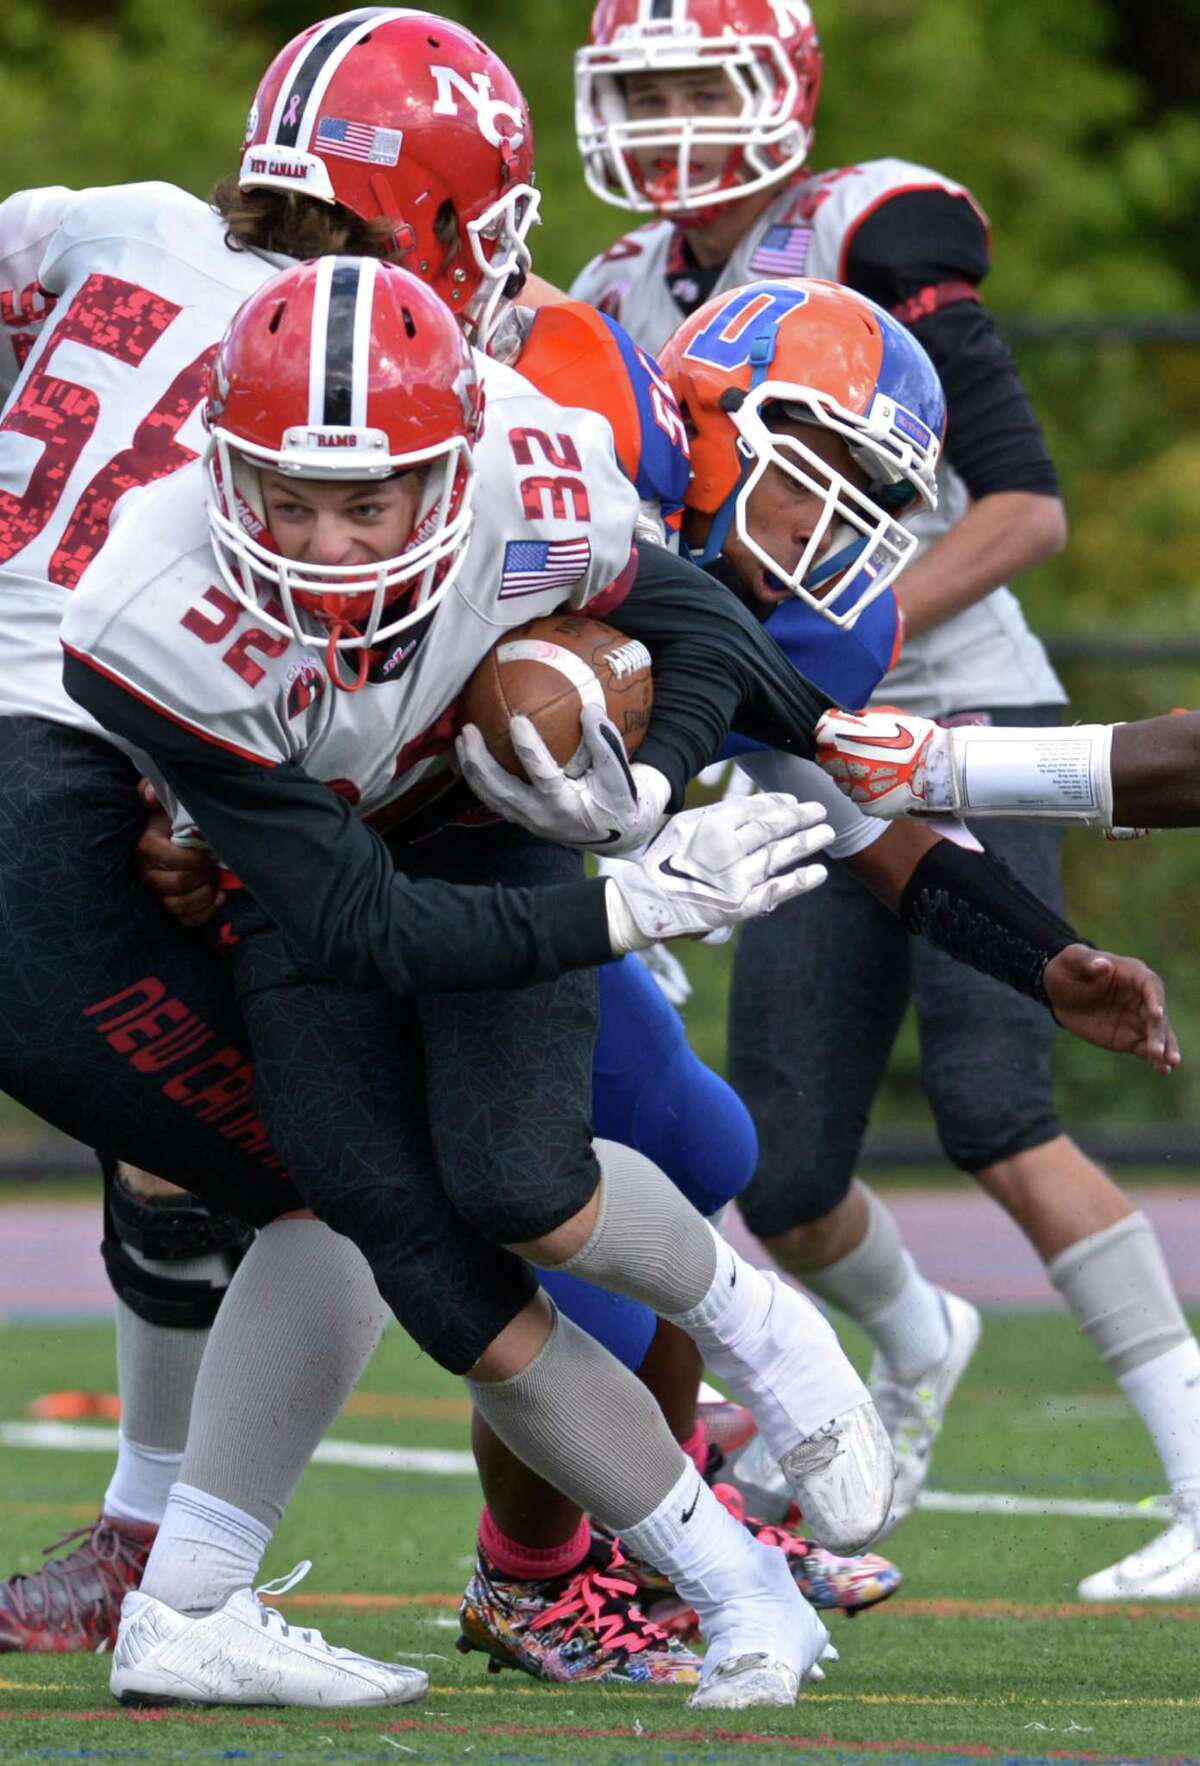 New Canaan's Graham Braden (32) breaks free with a block by team mate Teddy Hood (58) on Danbury's Marshal Vines (15) in the football game between New Canaan and Danbury high schools on Saturday afternoon, October 17, 2015, played at Danbury High School, Danbury, Conn.